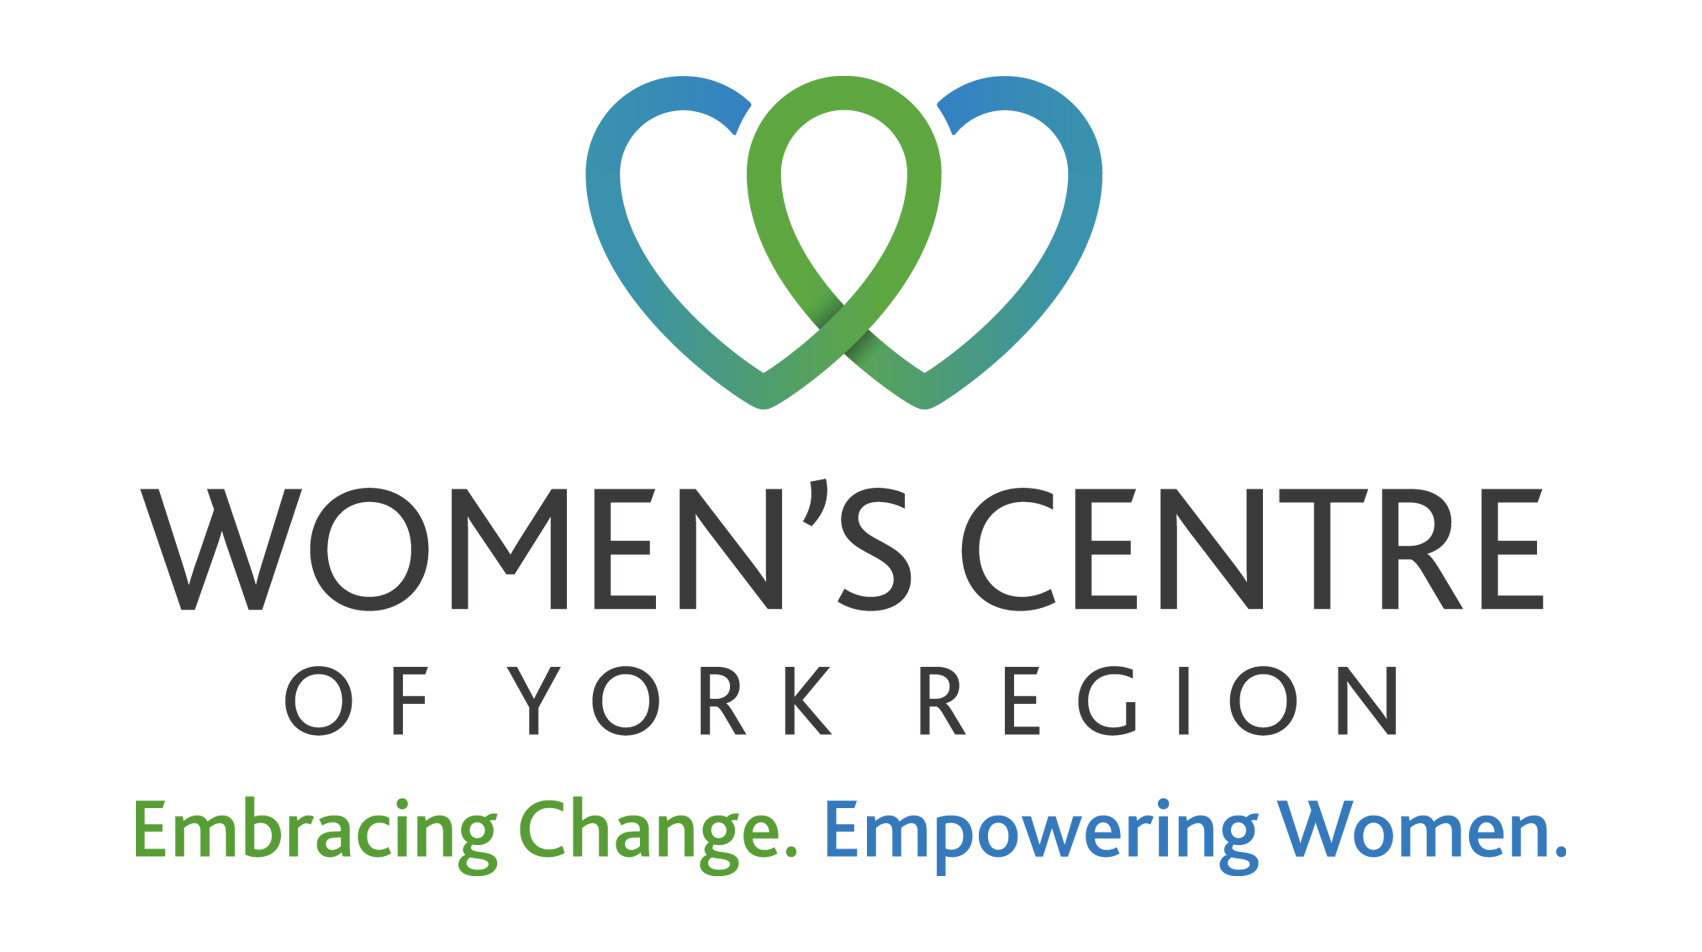 Women's Centre of York Region